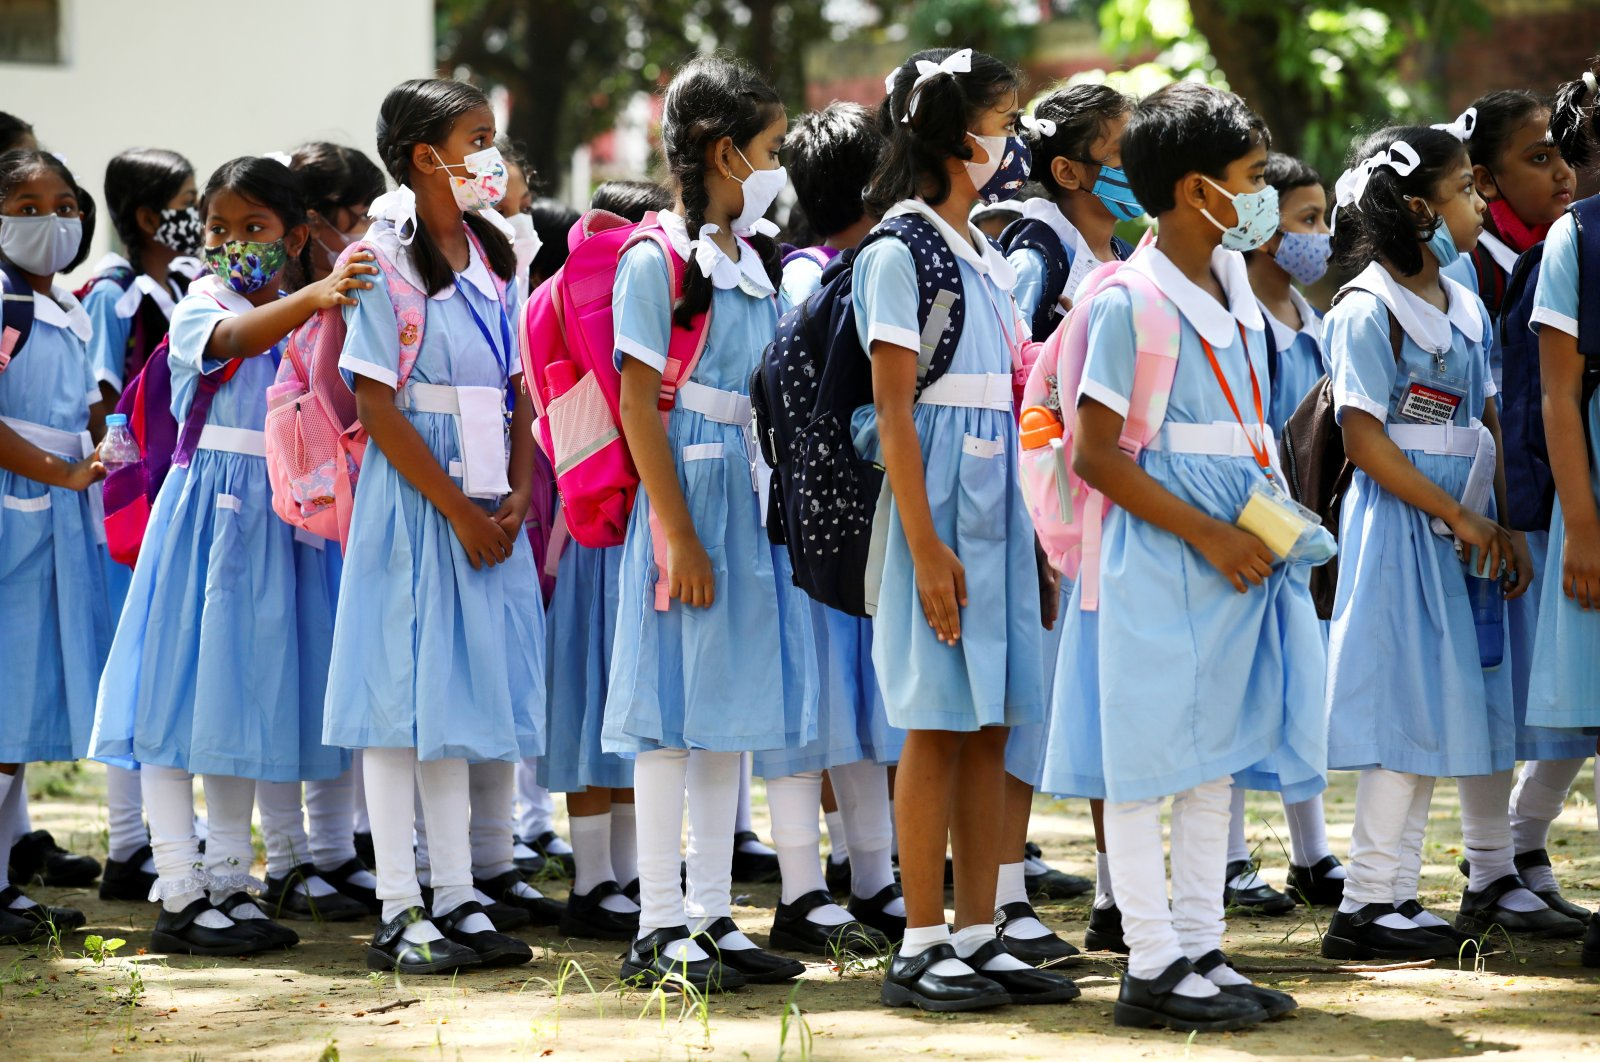 Students stand in queues after school hours at the Viqarunnisa Noon School & College after the government has withdrawn restrictions on educational institutions following a decrease in the number of cases of coronavirus disease (COVID-19) in Dhaka, Bangladesh, Sept. 12, 2021. (Reuters Photo)